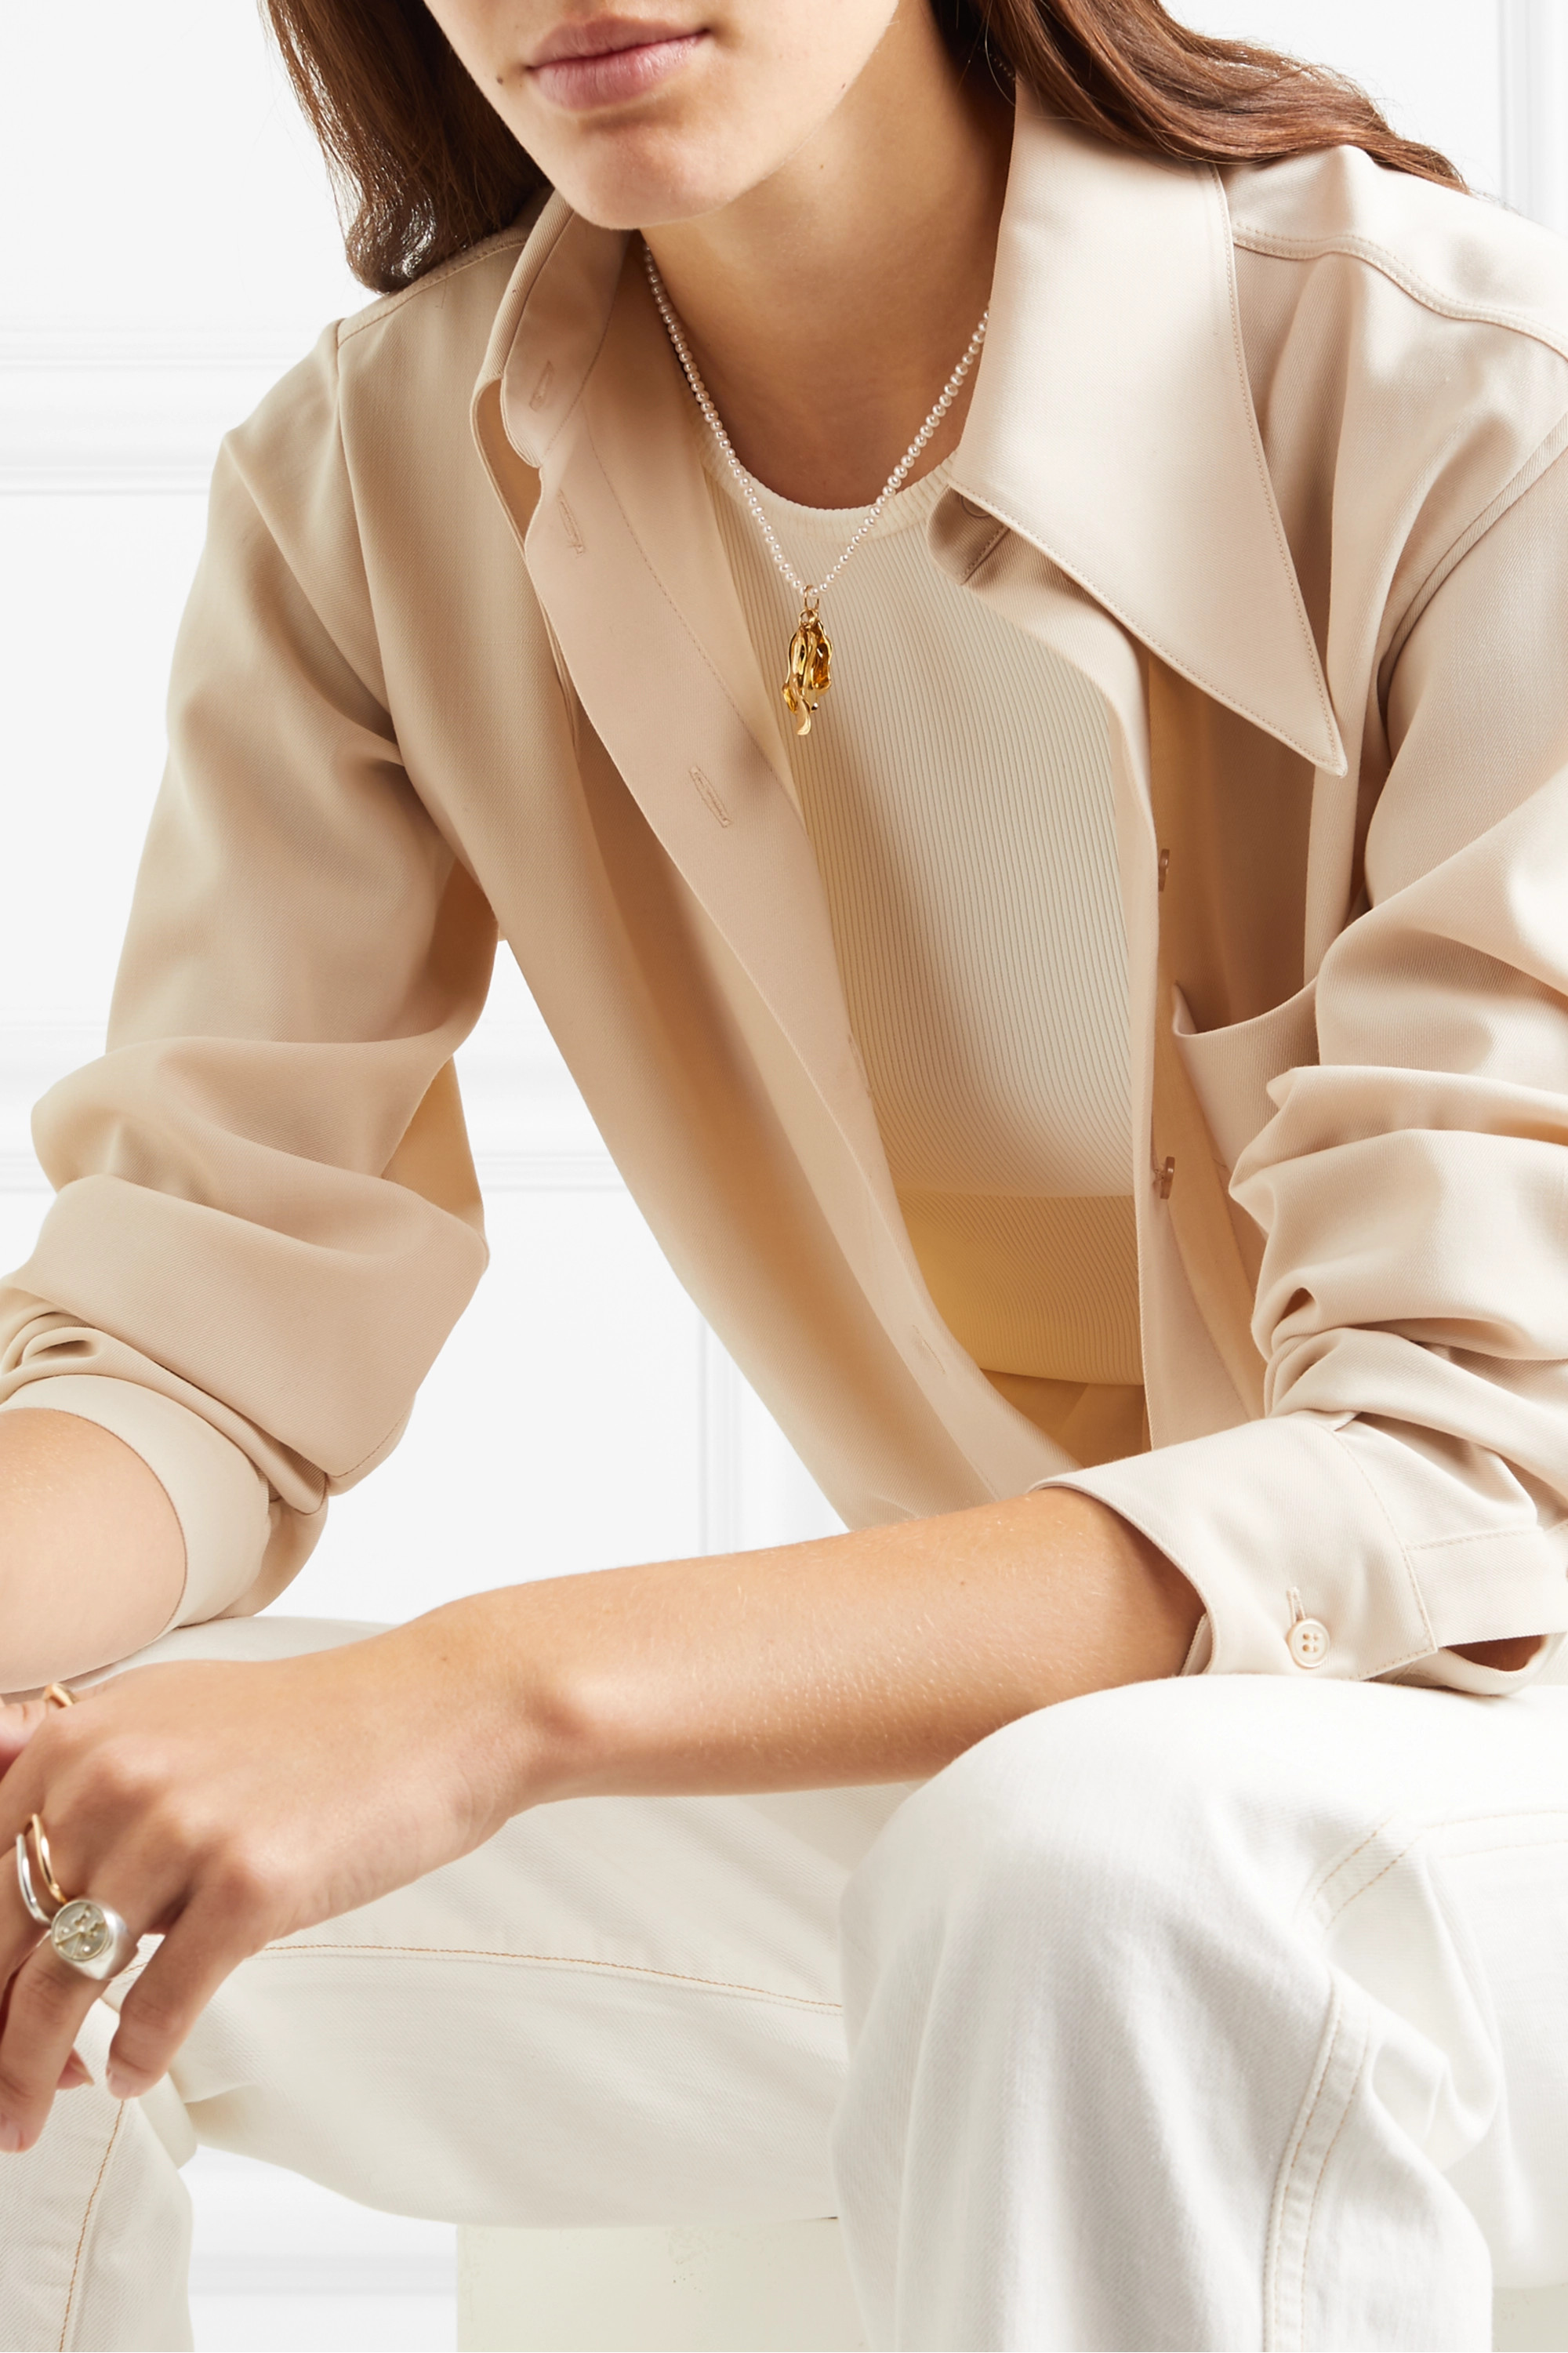 Leigh Miller + NET SUSTAIN Azalea gold-plated pearl necklace